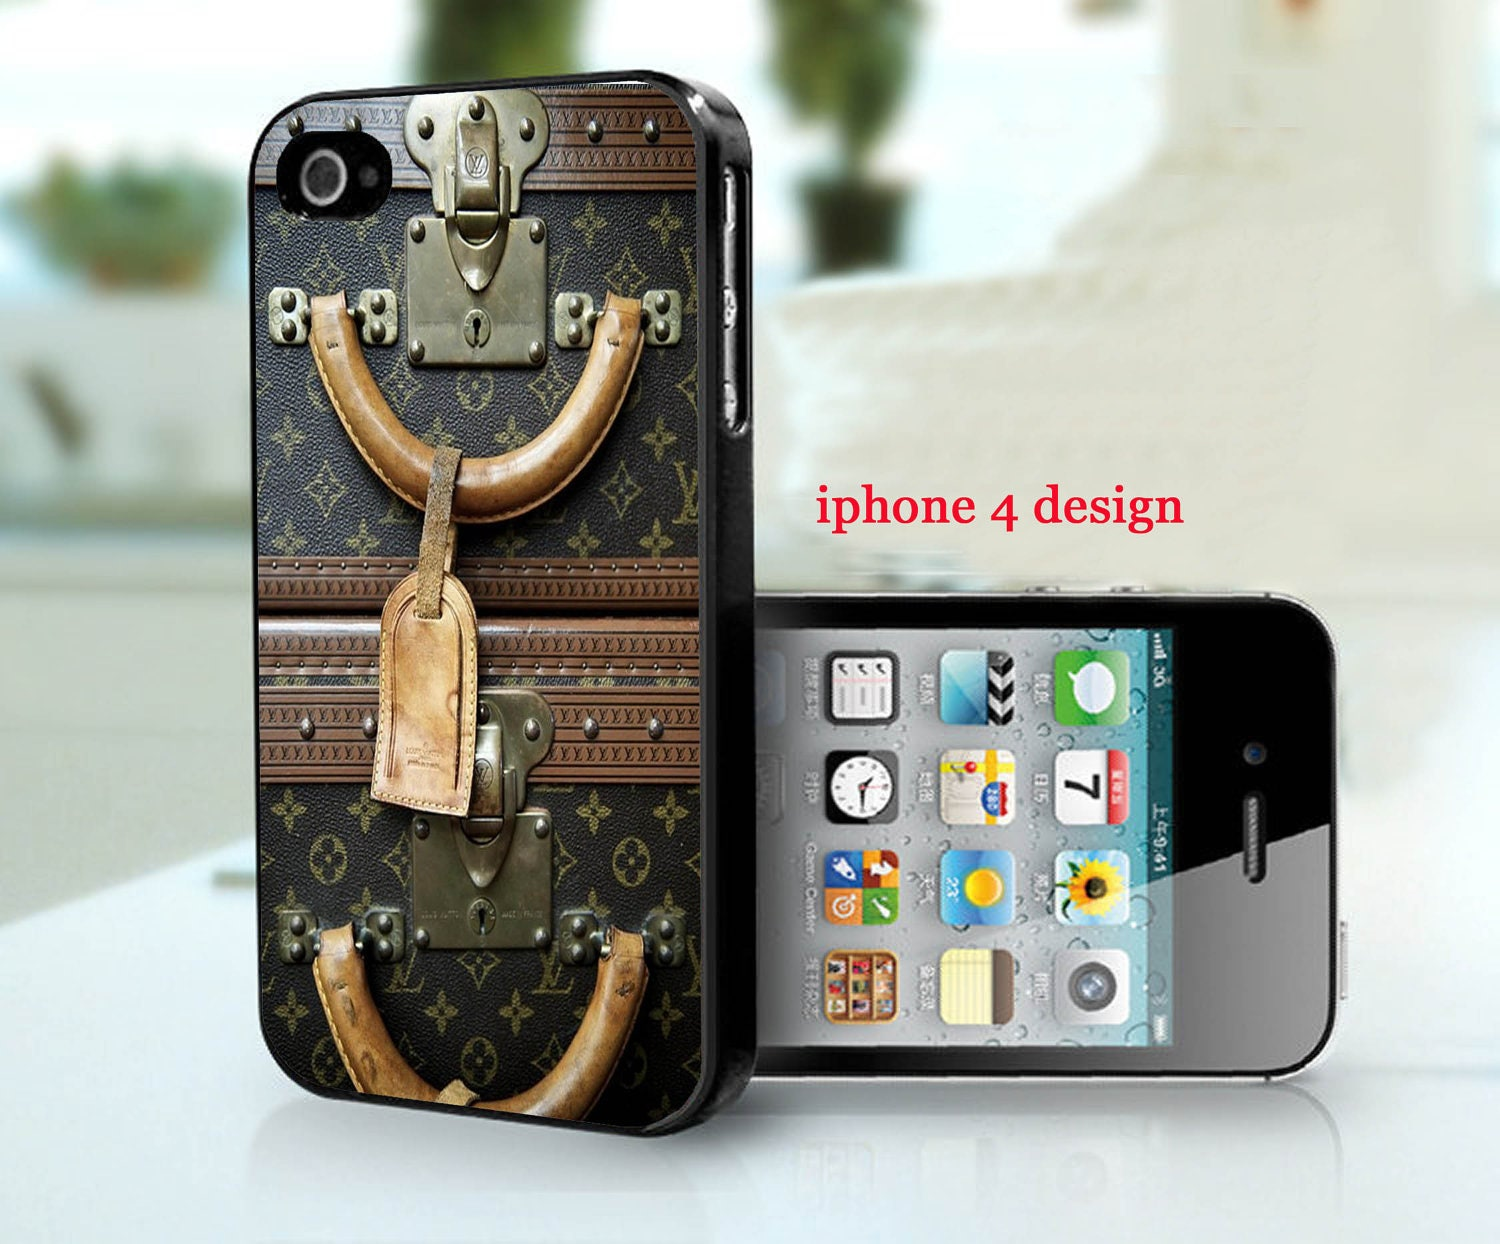 Louis Vuitton Vintage luggage Iphone 4 cell phone accessory